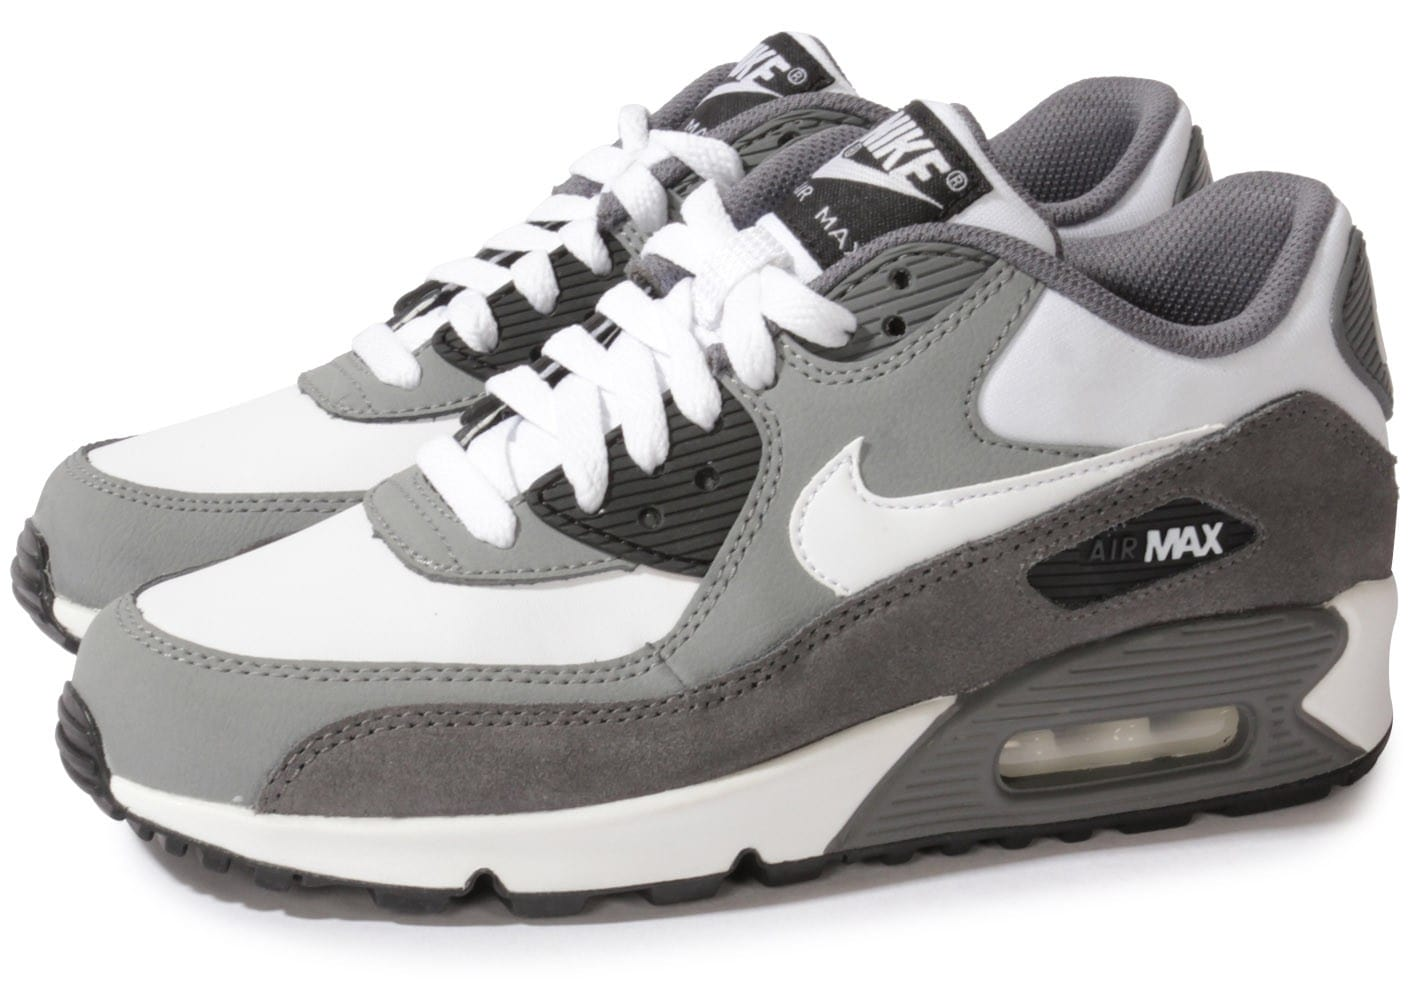 nike air max 90 blanche grise chaussures chaussures chausport. Black Bedroom Furniture Sets. Home Design Ideas